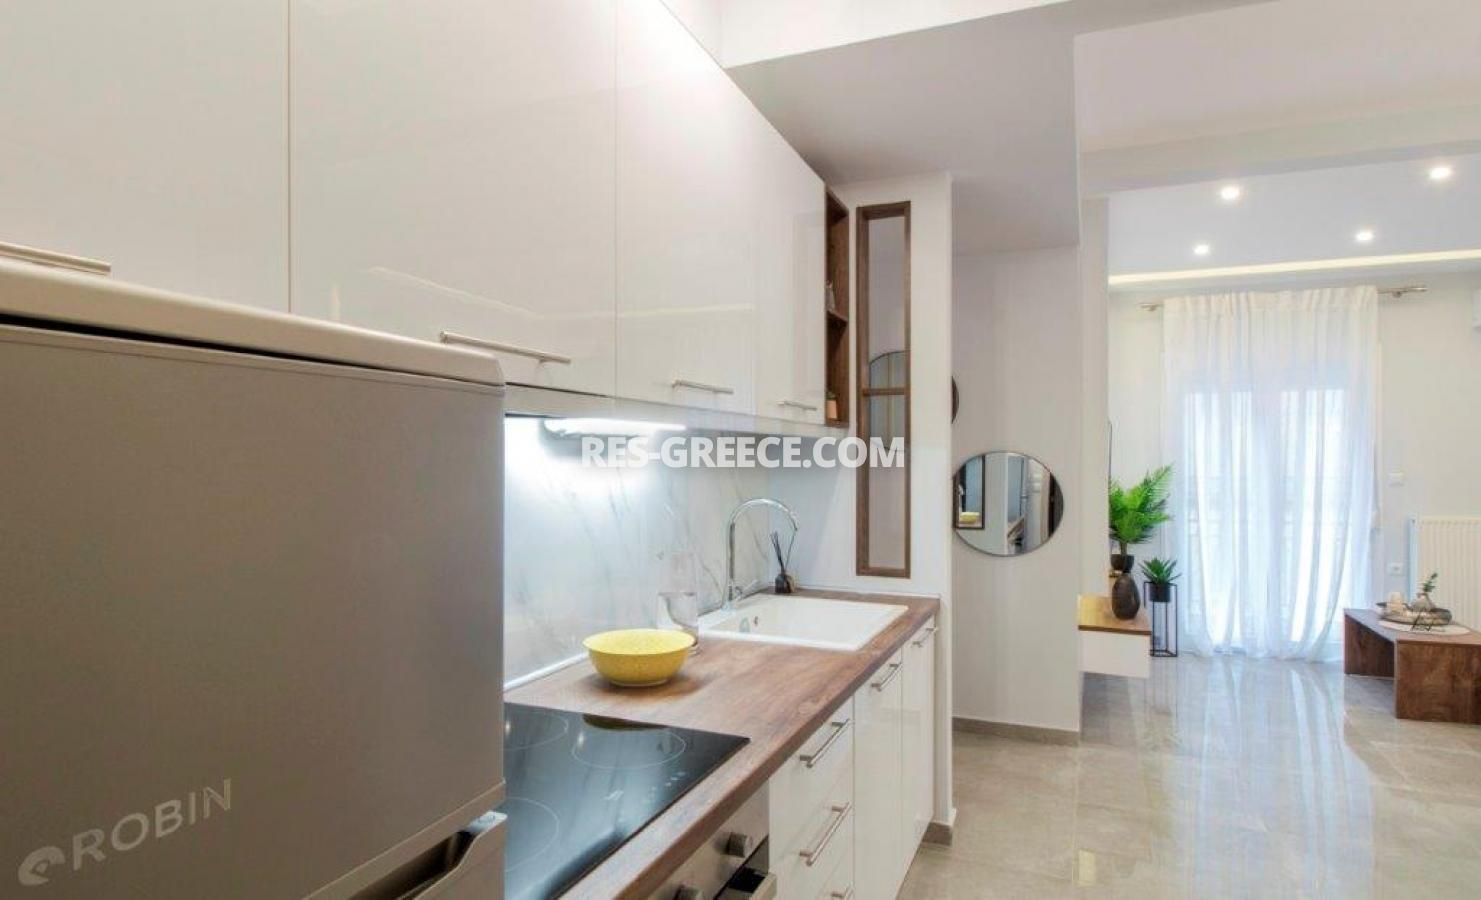 Kontogouri, Central Macedonia, Greece - fully furnished and decorated apartment after full renovation near Nea Paralia - Photo 8